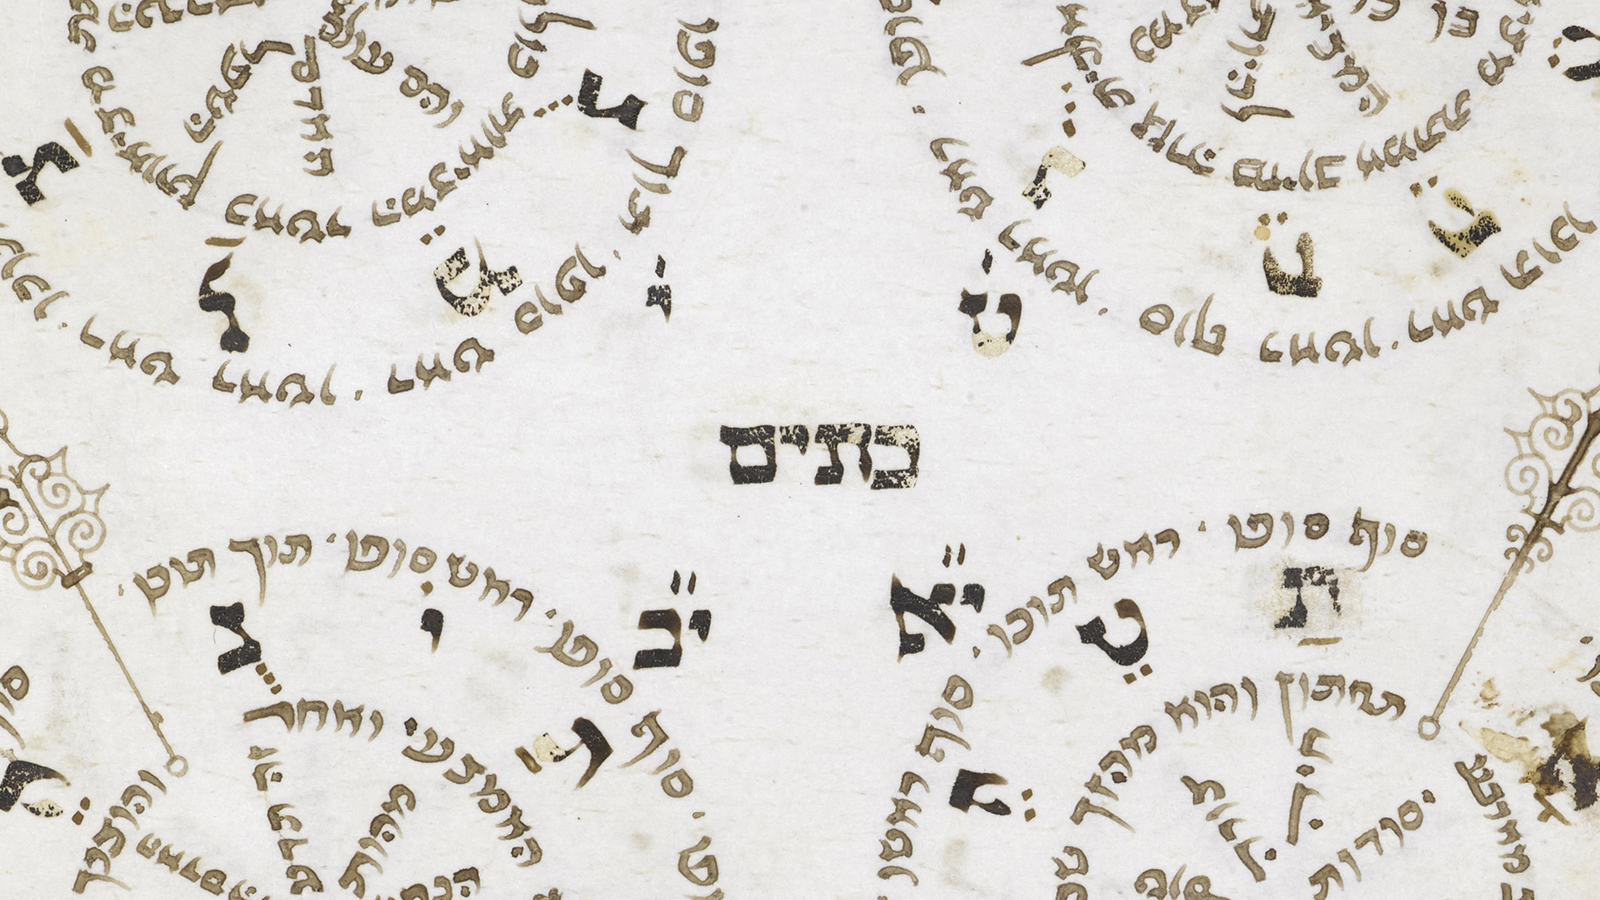 The power of language in Jewish Kabbalah and magic: how to do (and undo) things with words (Agata Paluch)